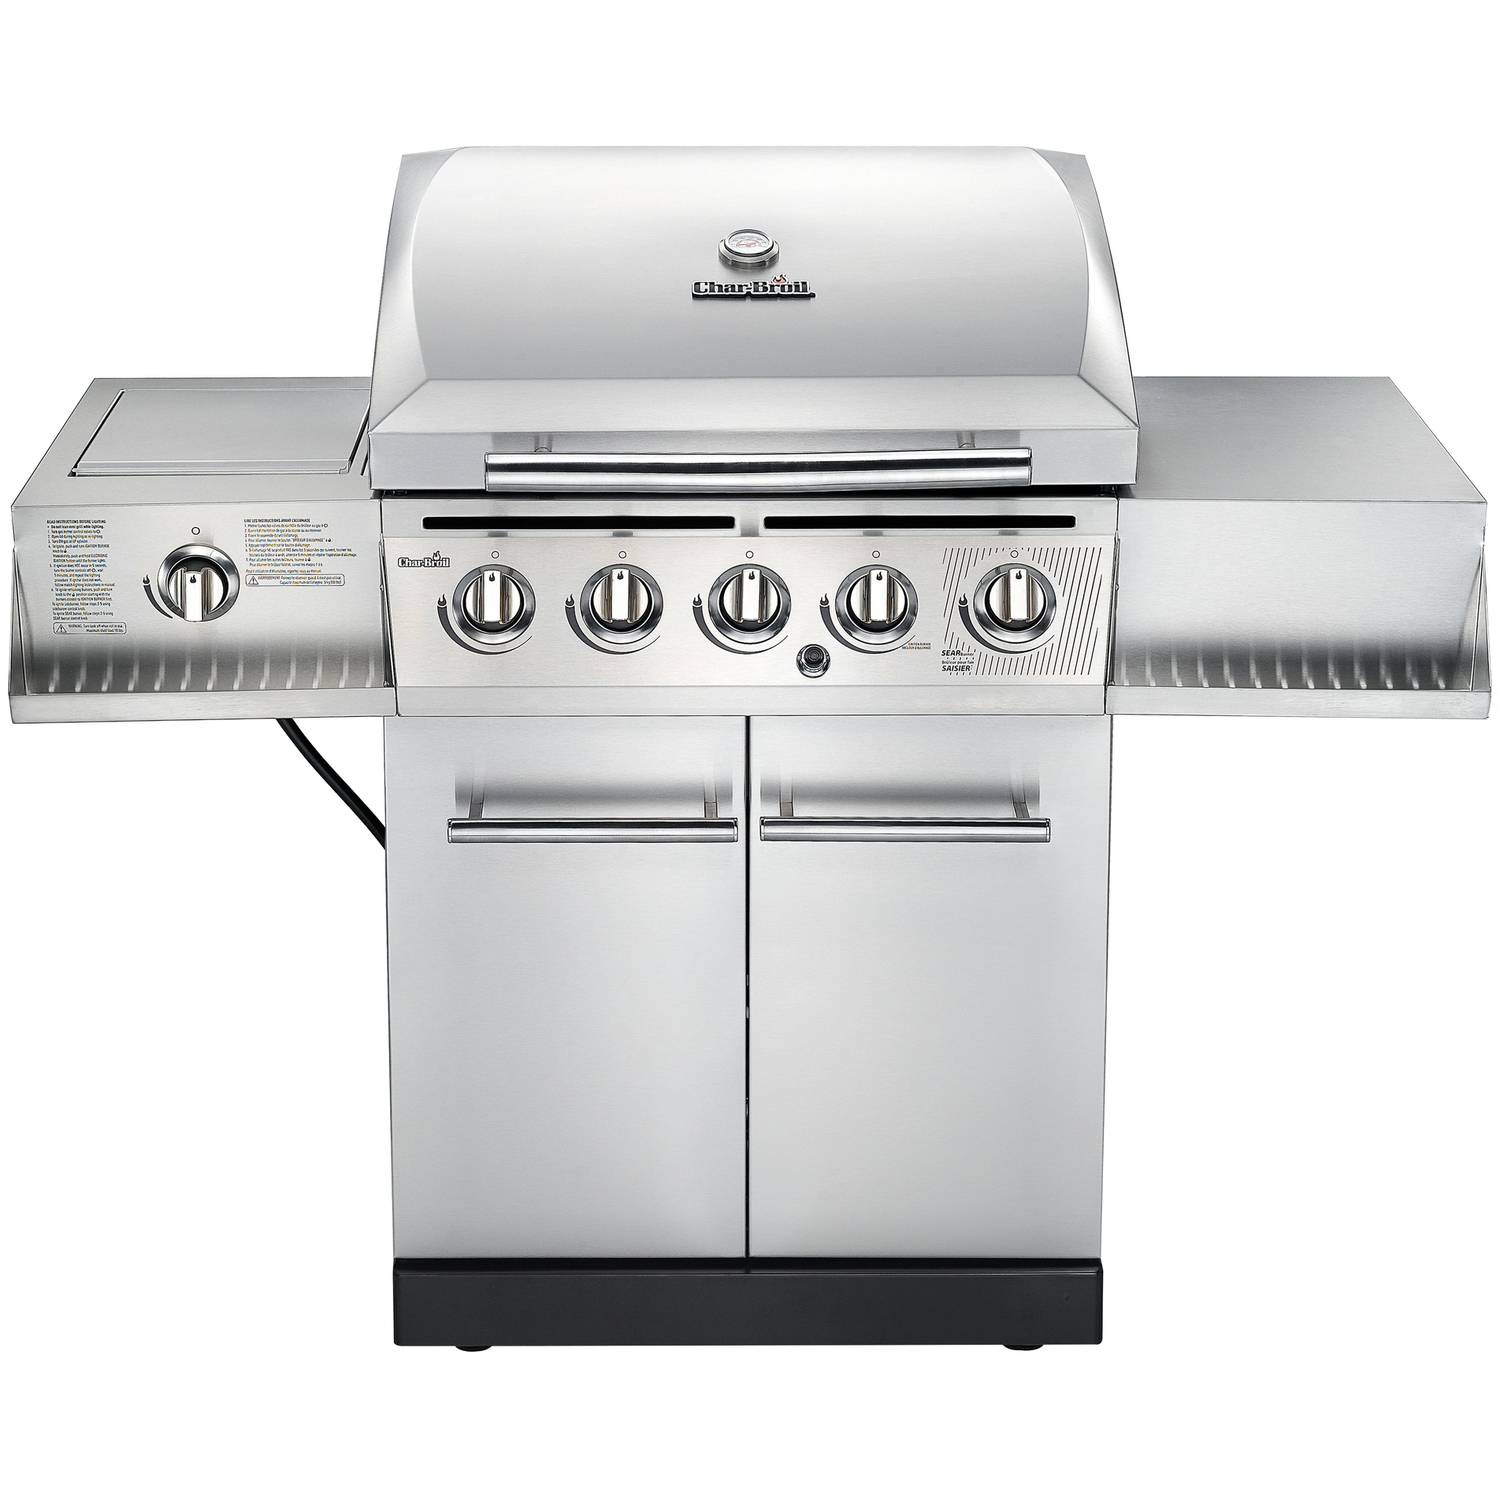 Char-Broil 500 Char-Broil 500 Five Burner Gas Grill